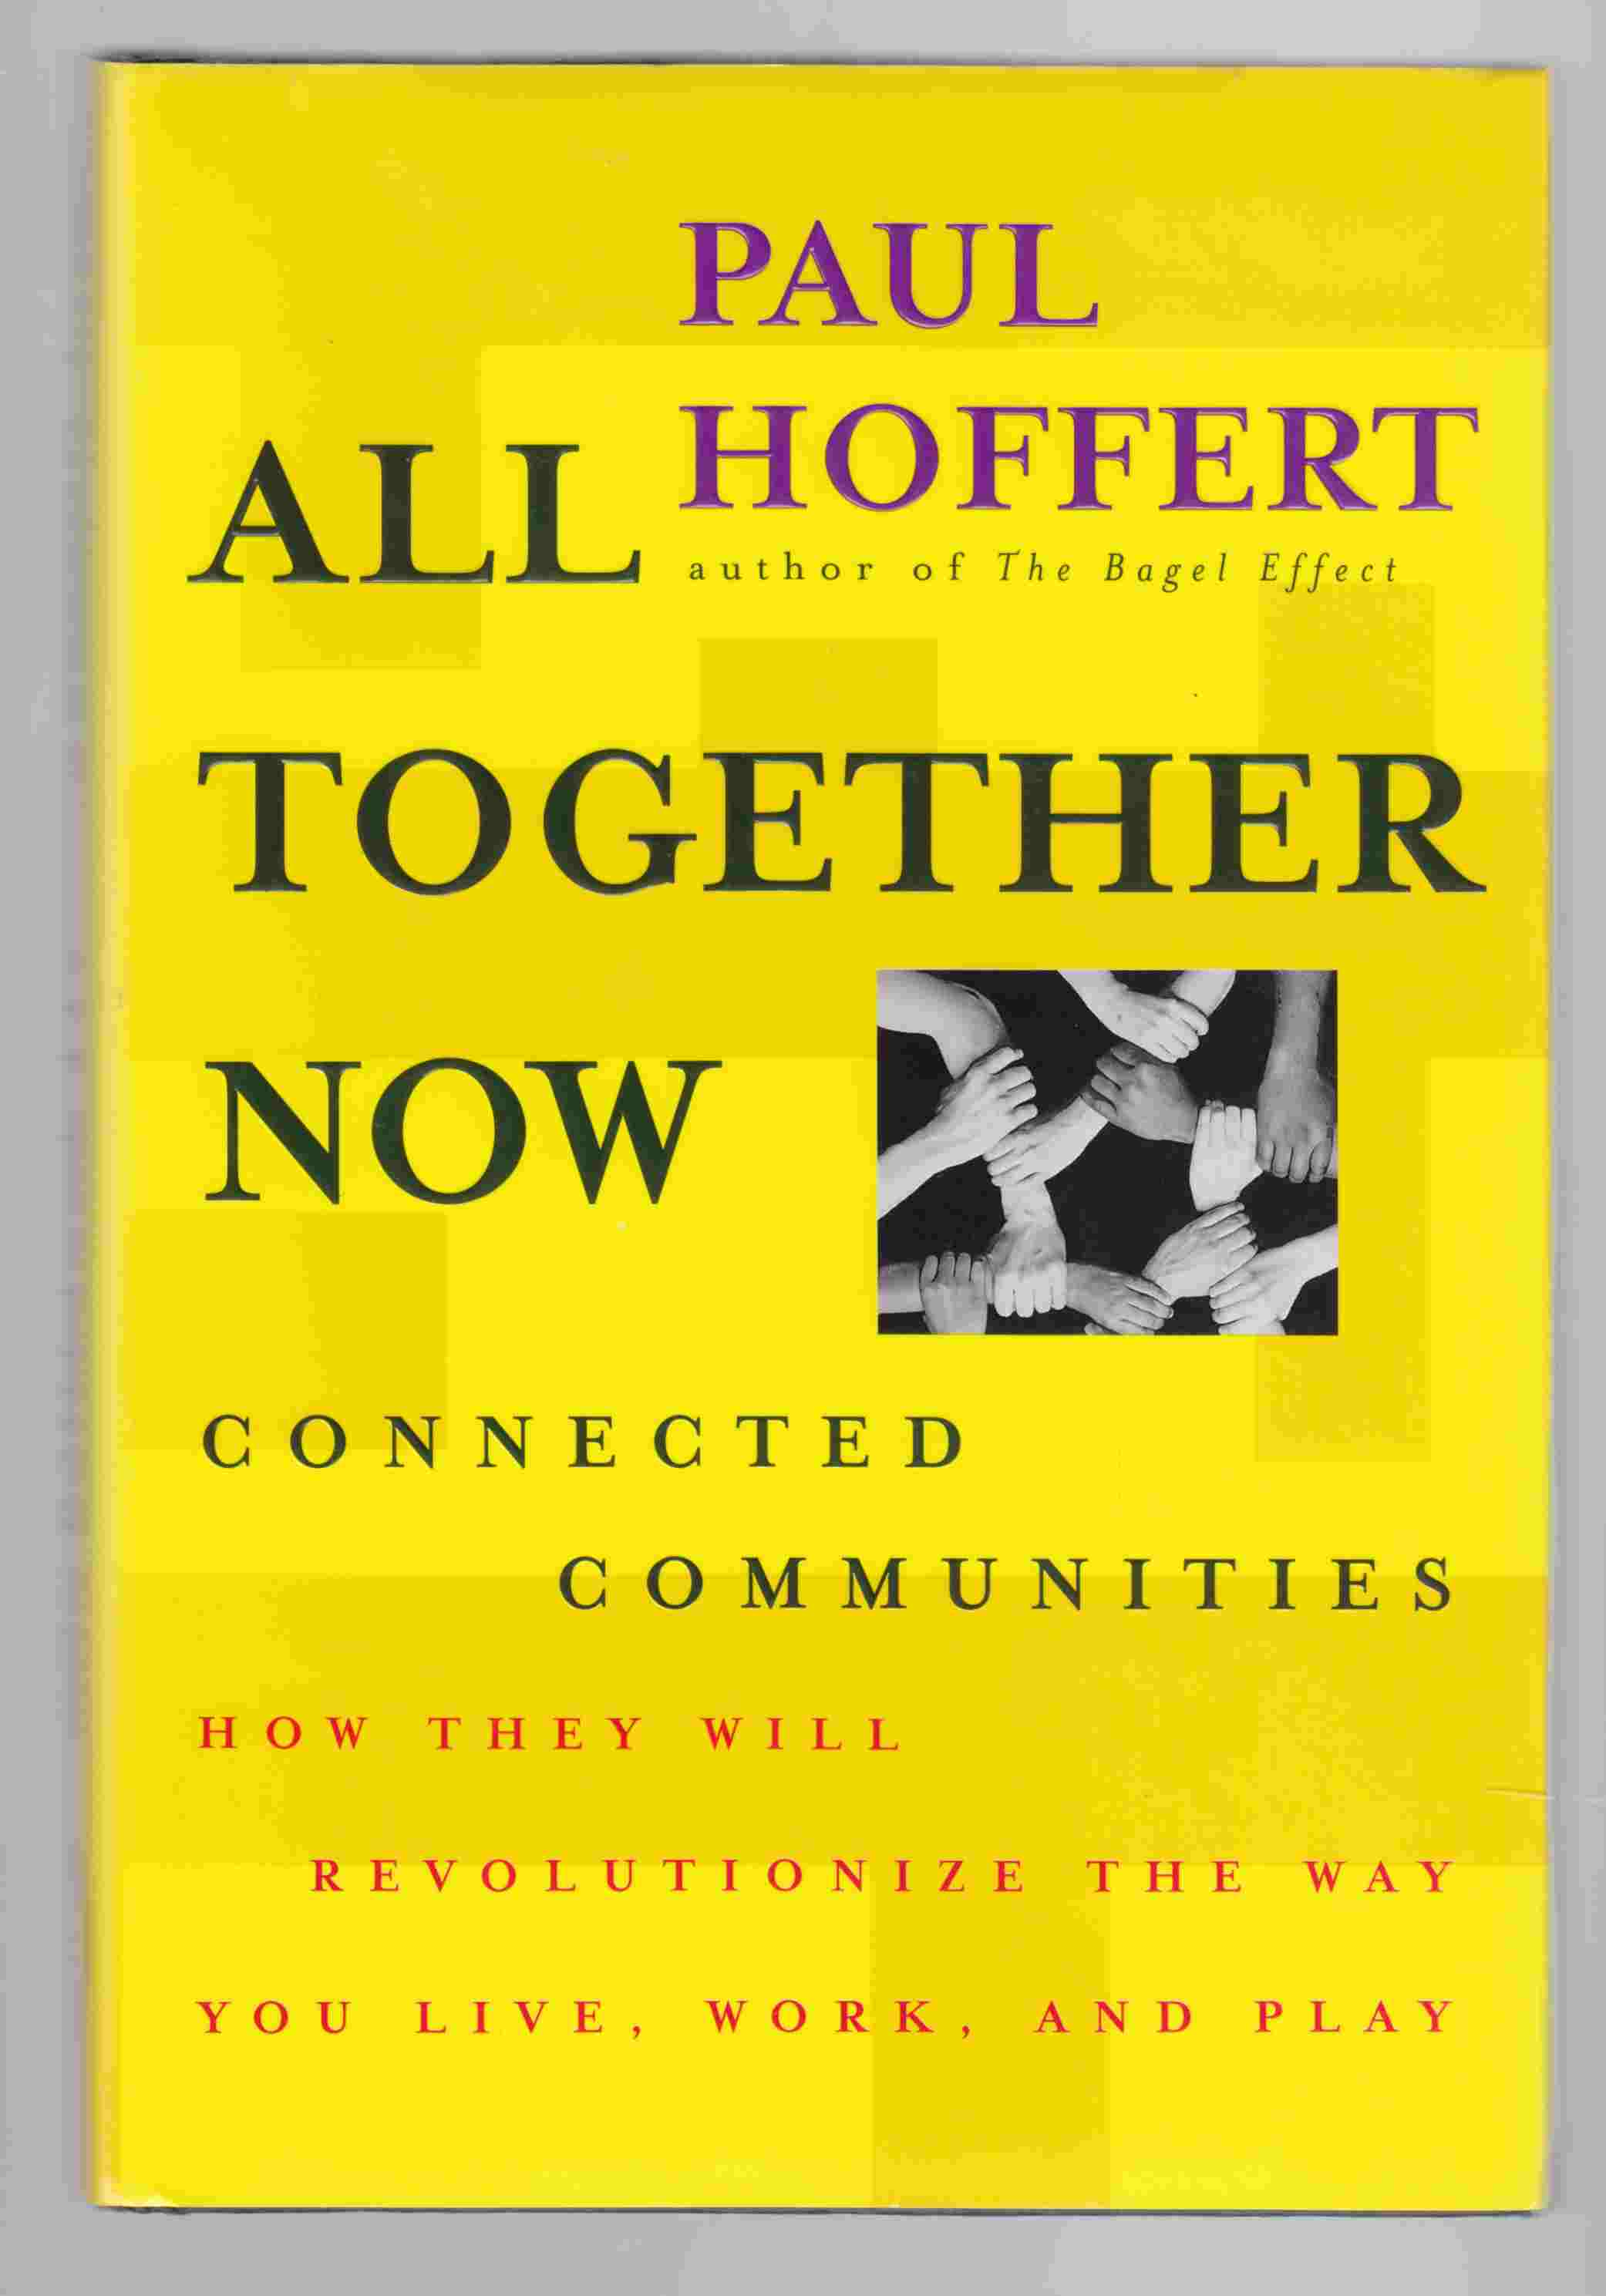 Image for All Together Now Connected Communities: How They Will Revolutionize the Way You Live, Work, and Play